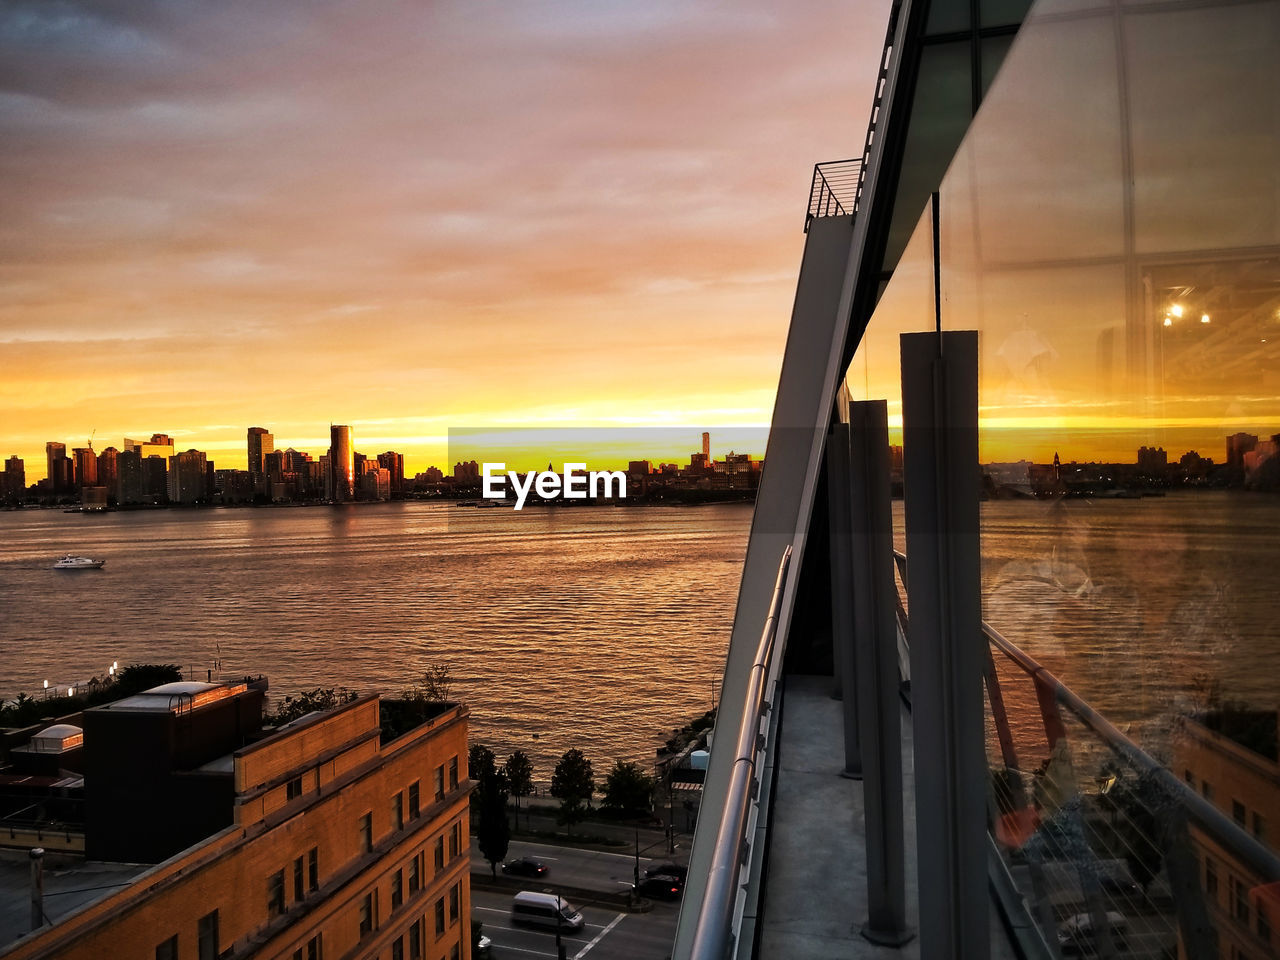 Sunset Cloud - Sky Architecture City Sky Built Structure Steel Outdoors Urban Skyline Cityscape No People Water Silhoutte Photography Sunset Silhouettes Sunset_collection Sunsetlover Sunsetphotographs Architecture Building Exterior Reflections Reflection_collection